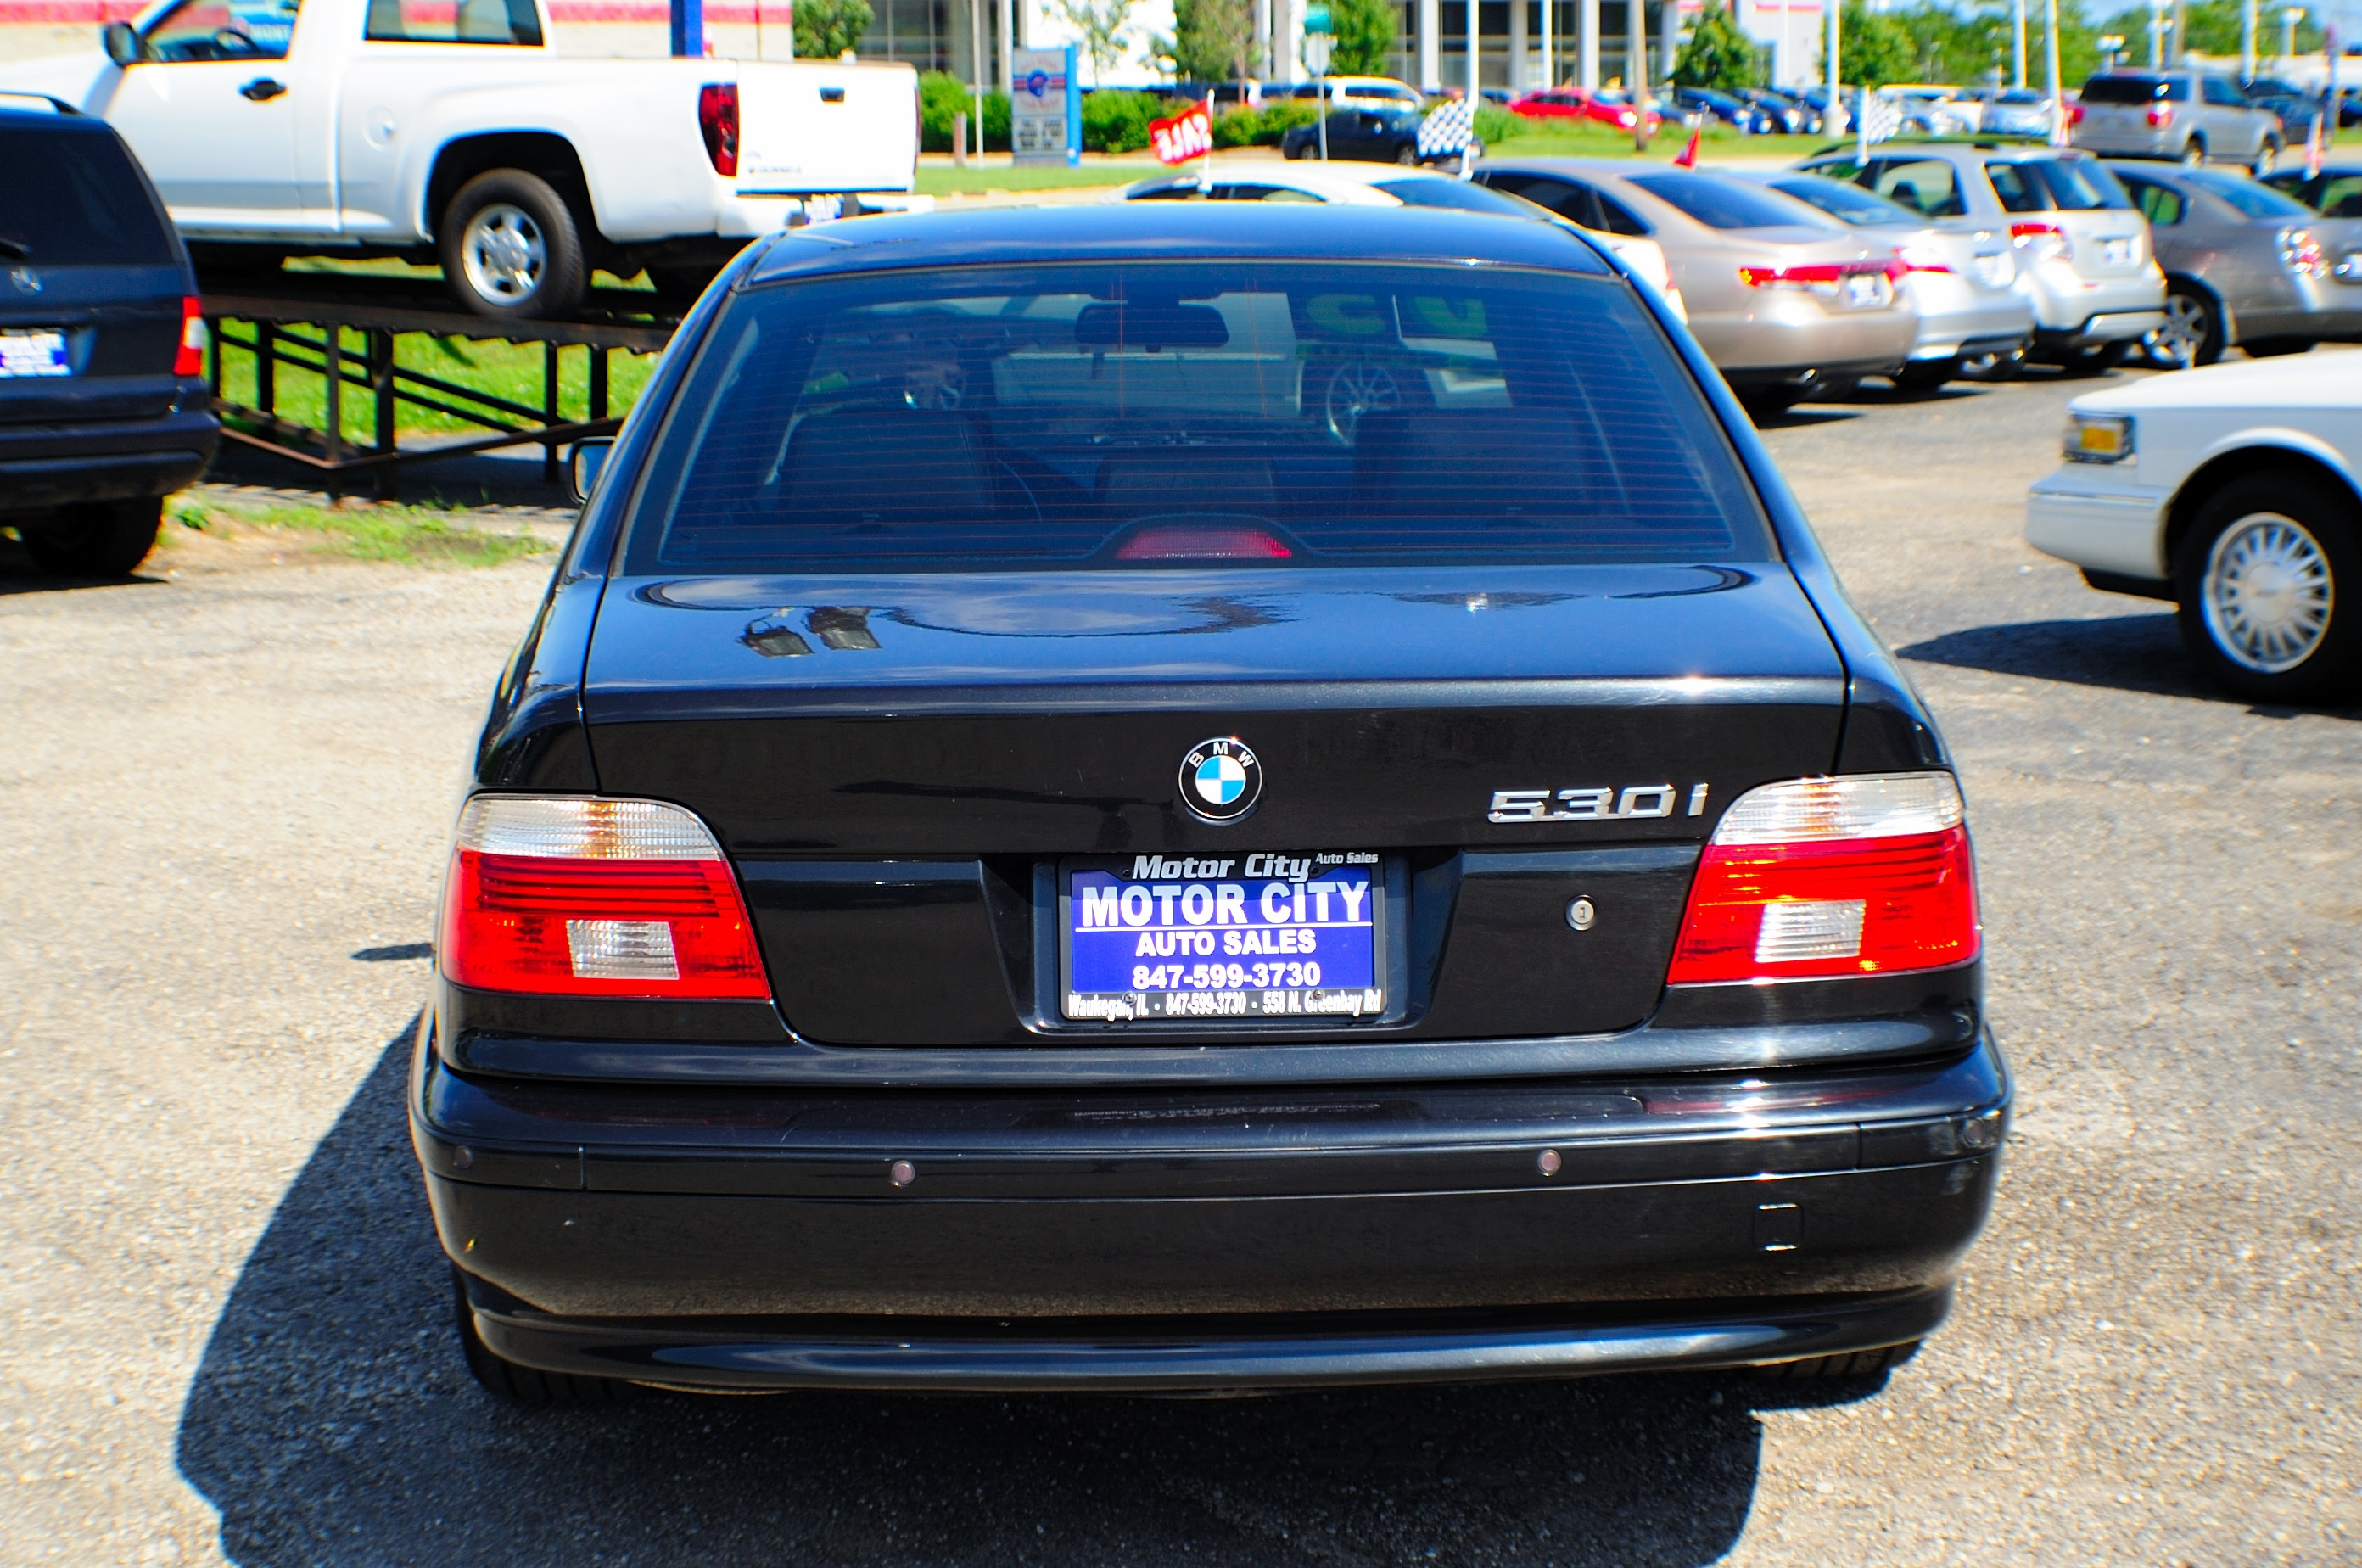 2003 BMW 530i 5 Series Black M5 Manual Sedan Used Car Sale Waukegan Kenosha